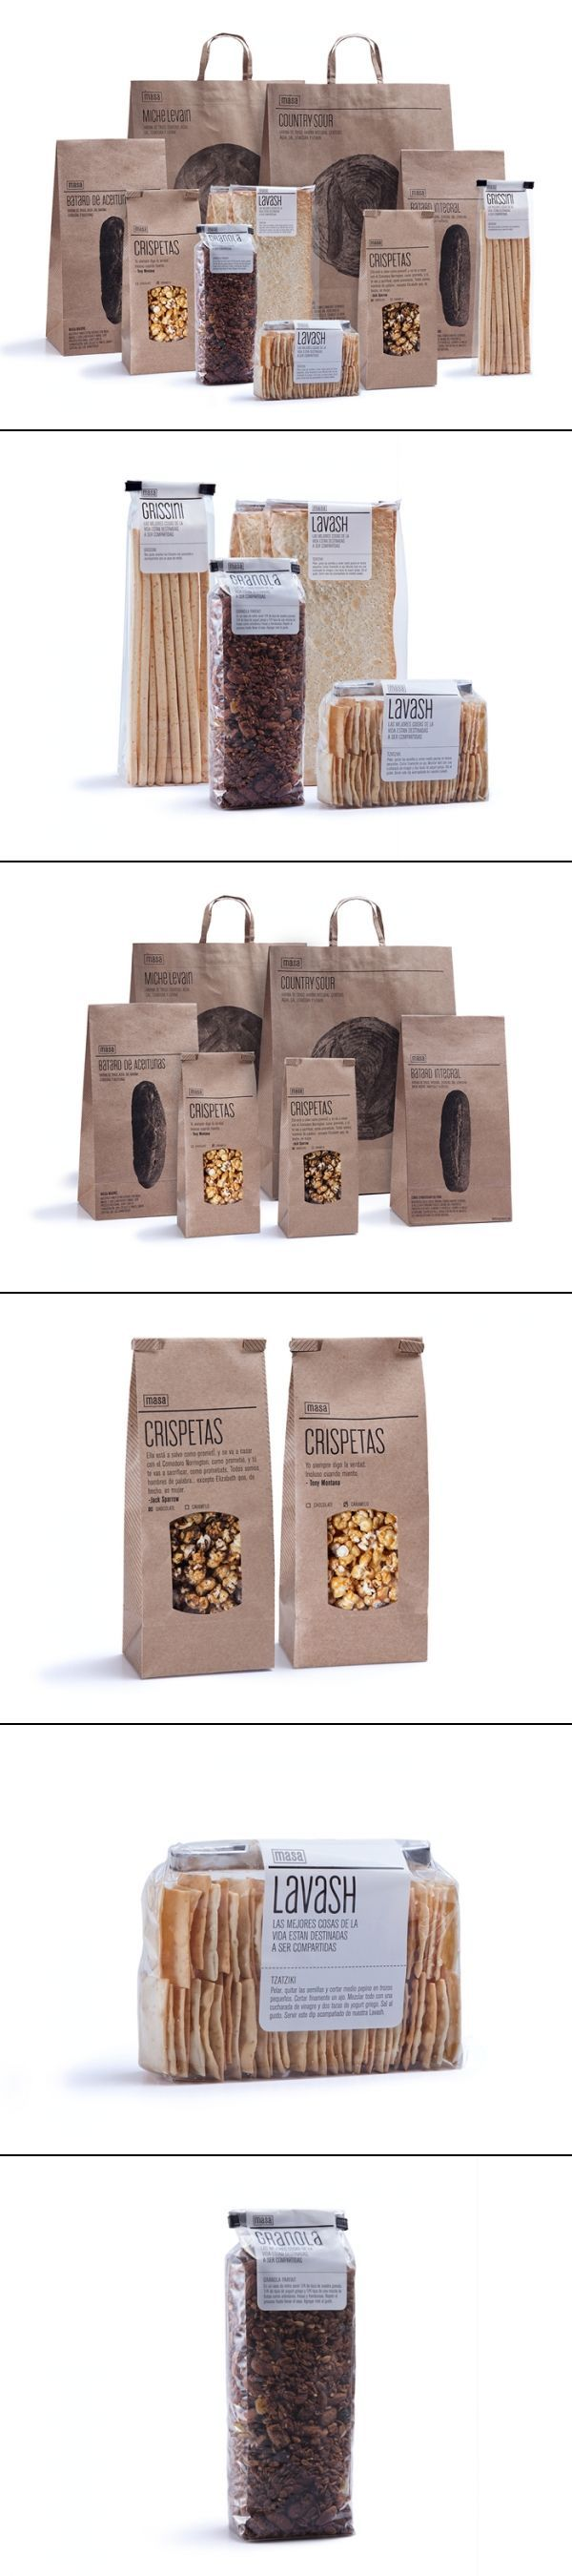 Brown bag packaging